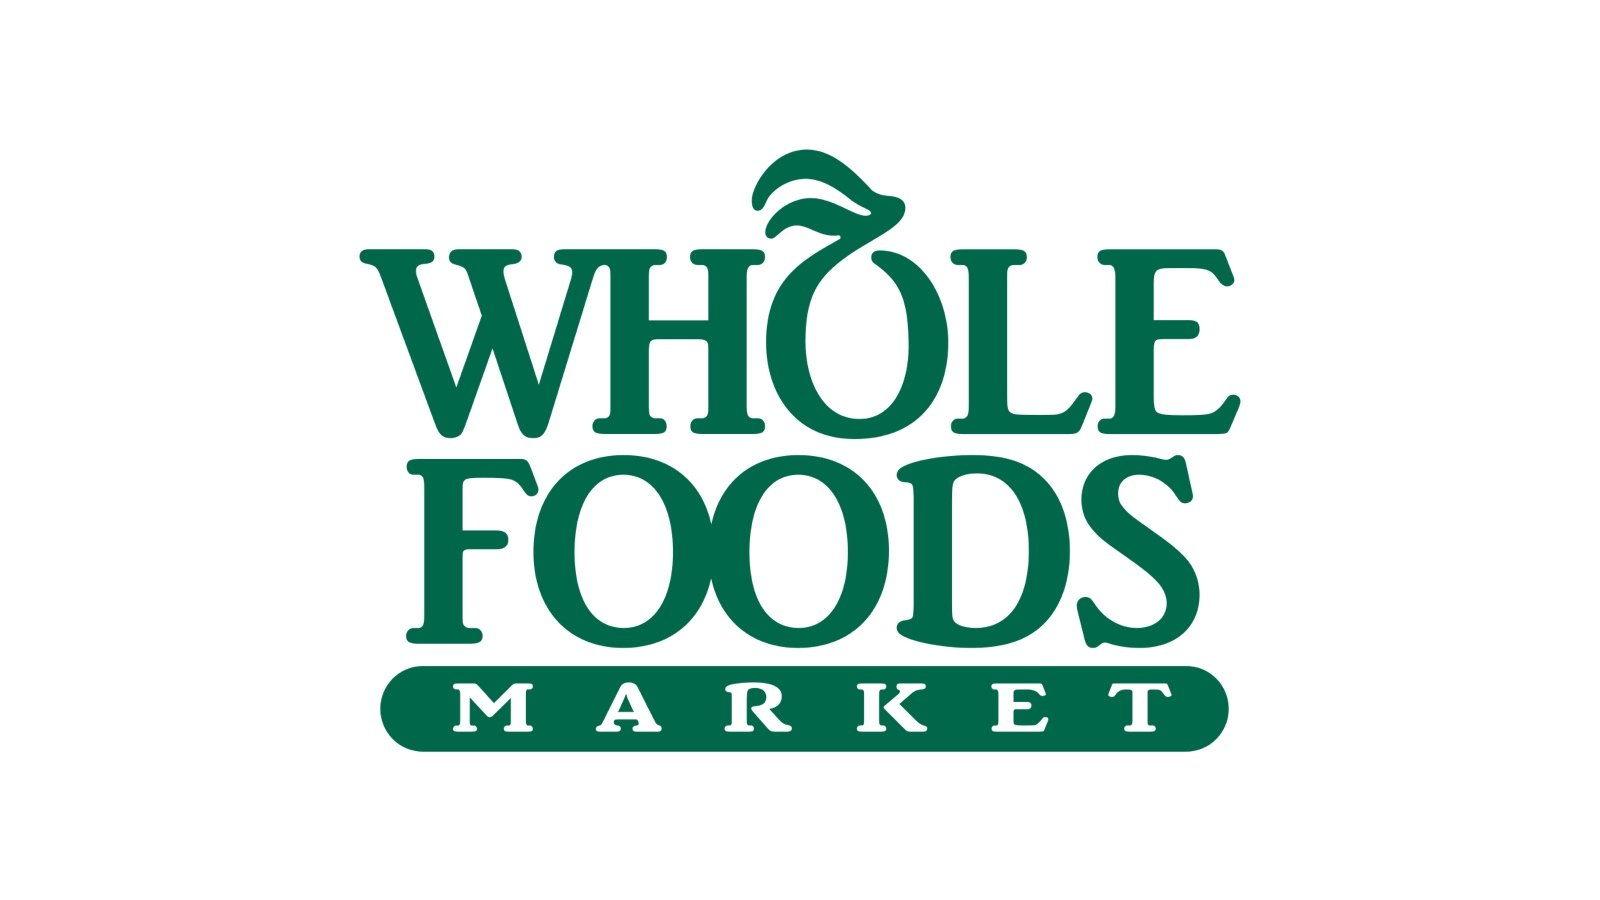 Green Wholefoods logo